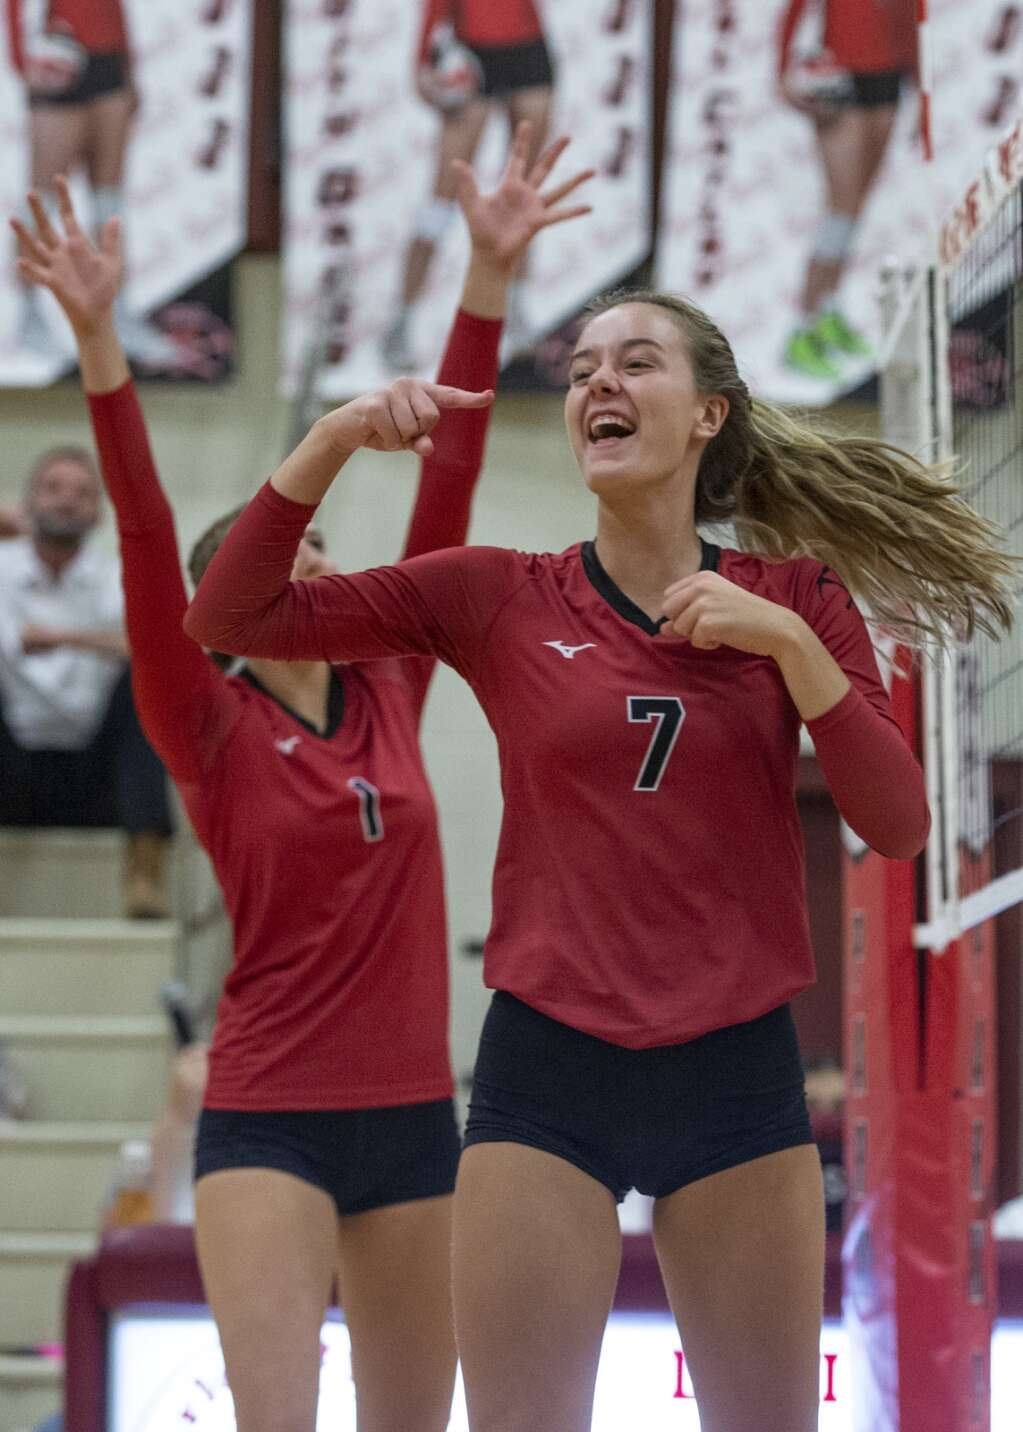 Park City High School senior Grace Crosby (7) cheers after scoring a point for the Miners during their matchup against East High School Tuesday evening, Sept. 14, 2021. The Miners swept the Leopards 3-0. (Tanzi Propst/Park Record)